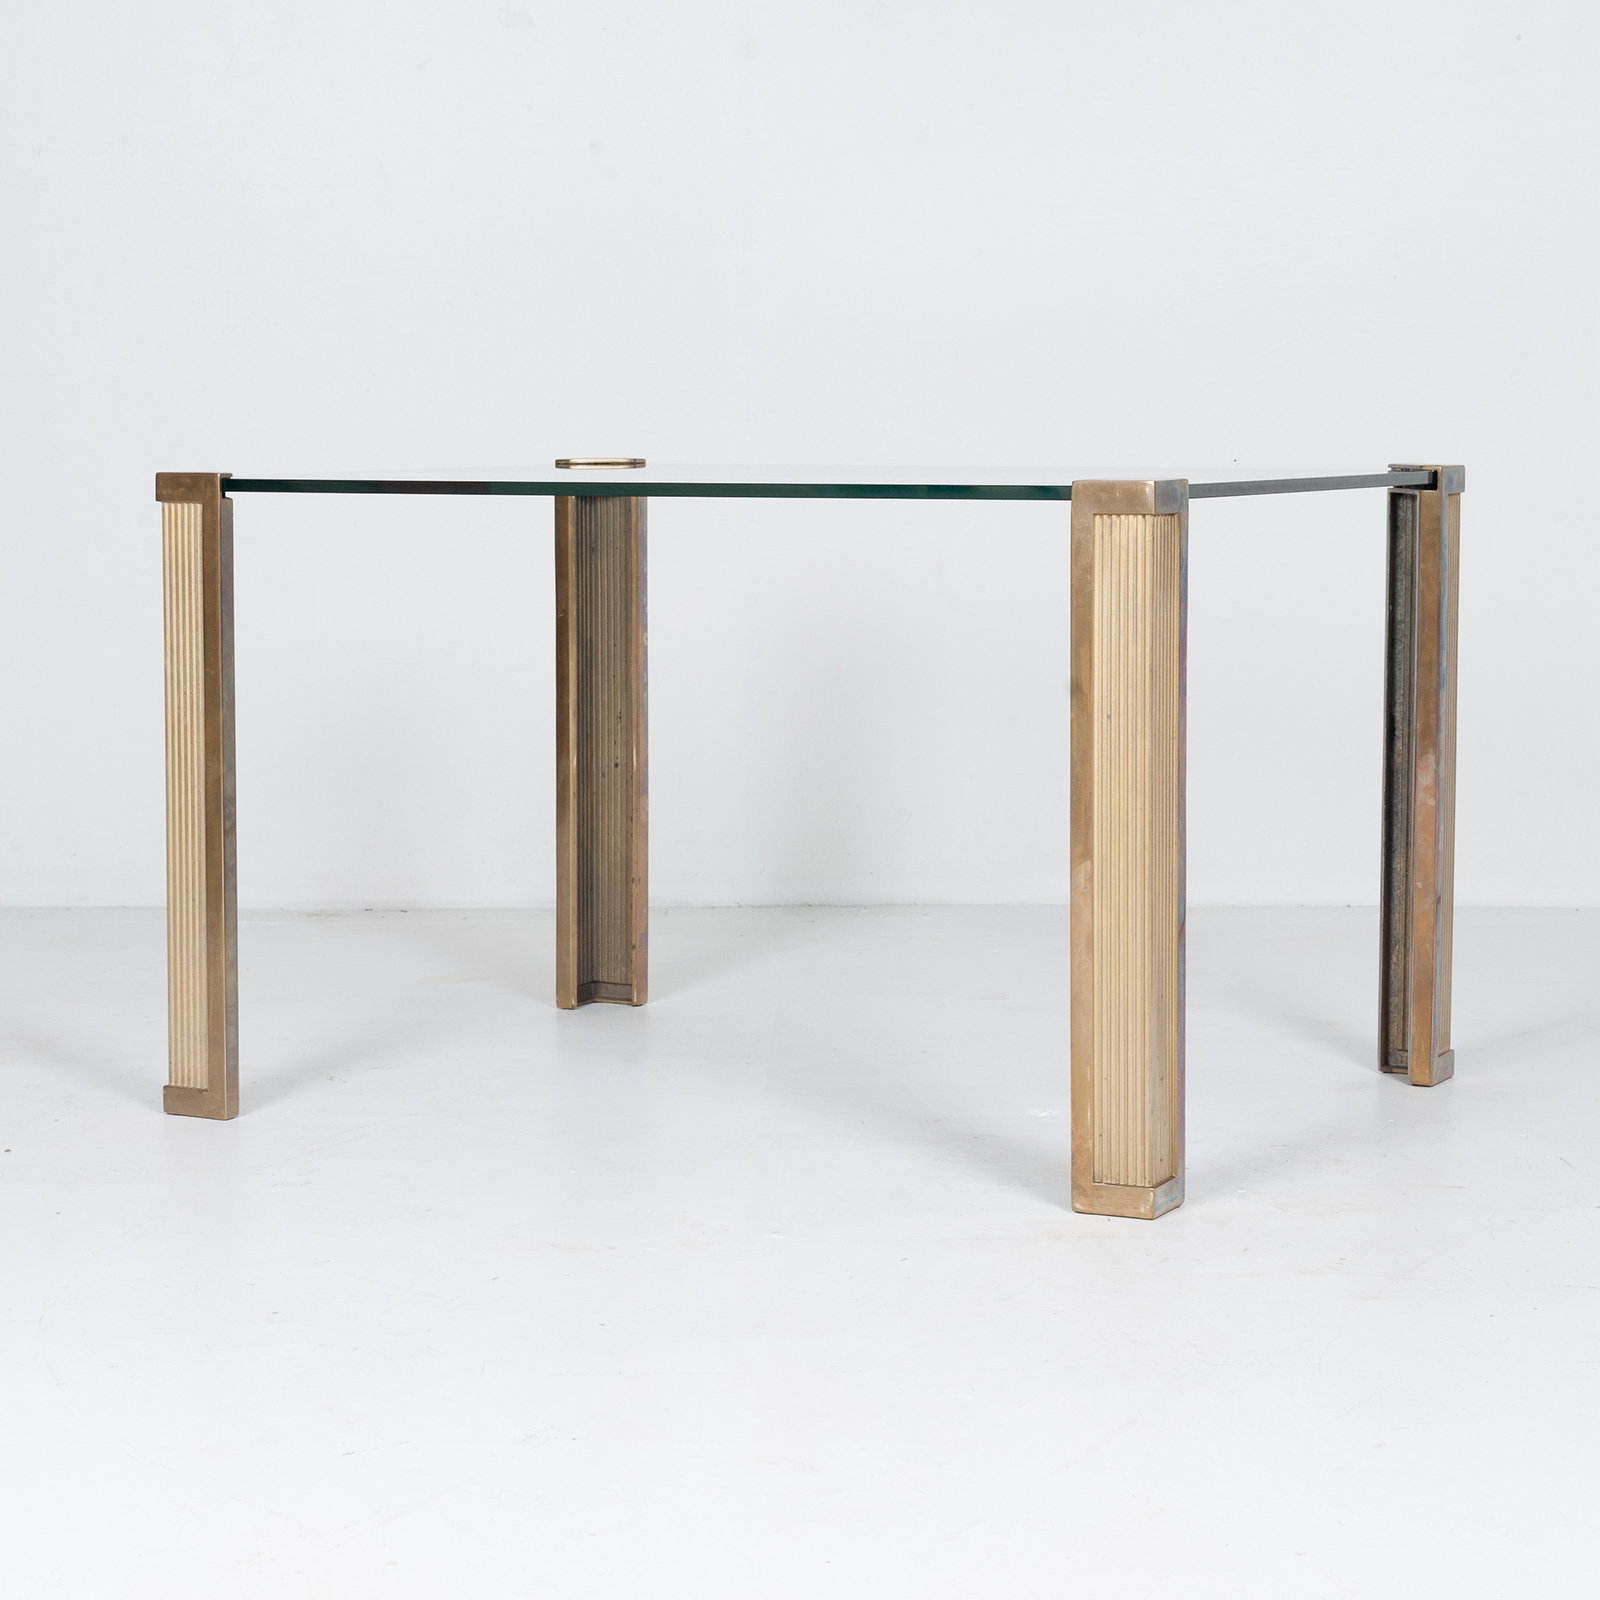 Dining Table With Solid Brass Cast Legs And Glass Top By Peter Ghyczy, 1970s, The Netherlands 89